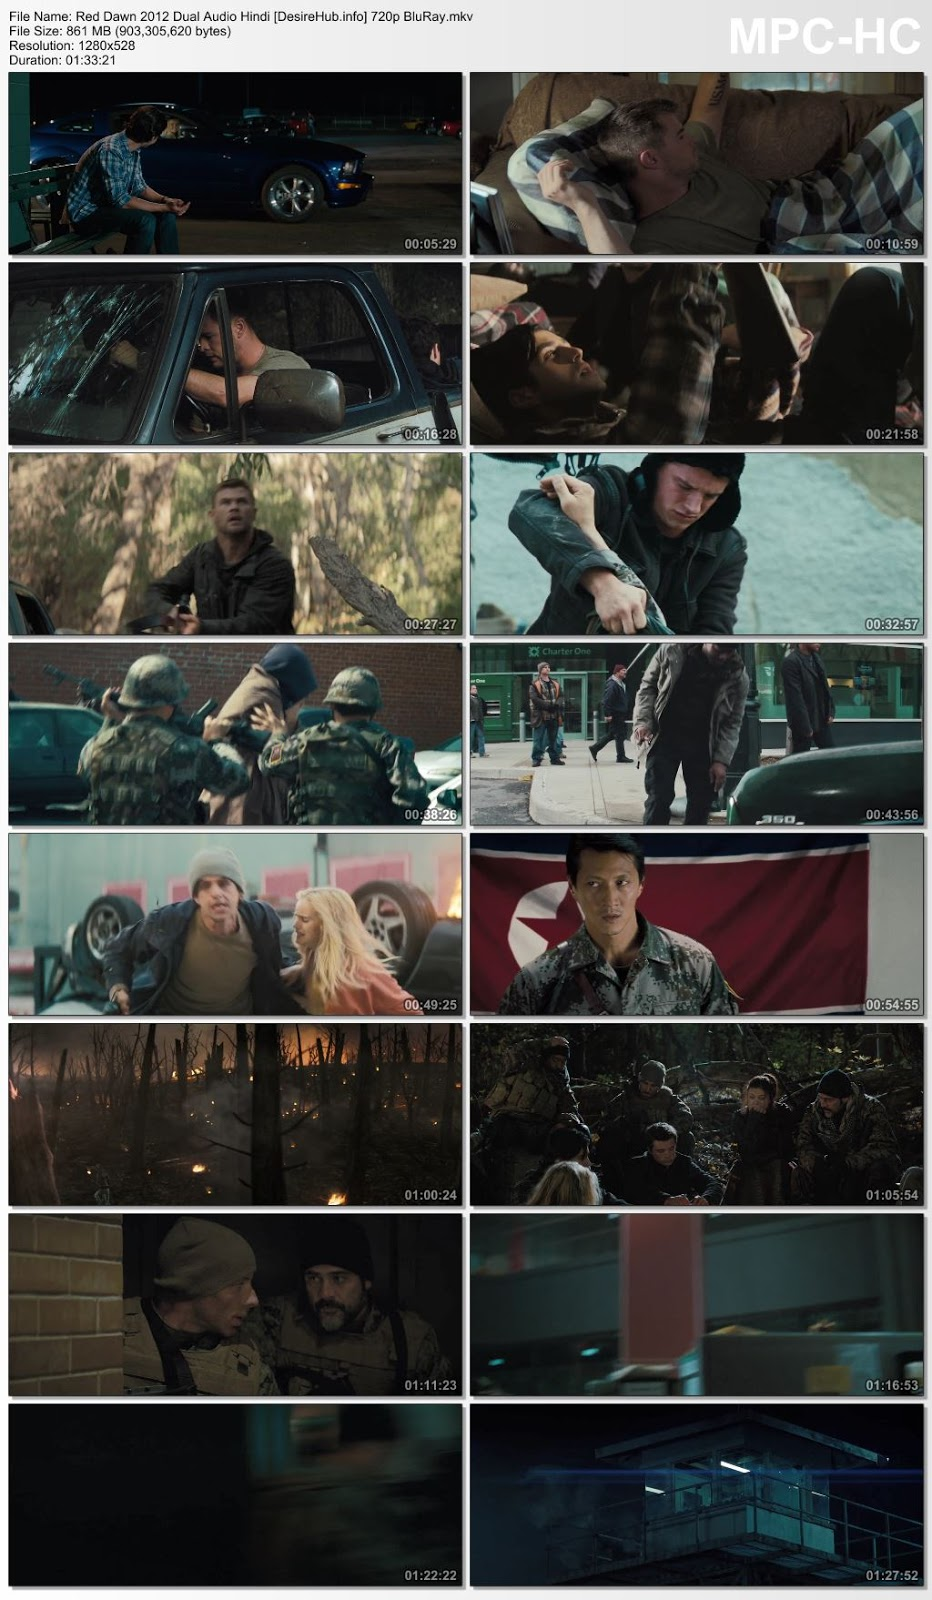 Red Dawn 2012 Dual Audio Hindi 480p BluRay 300MB Desirehub